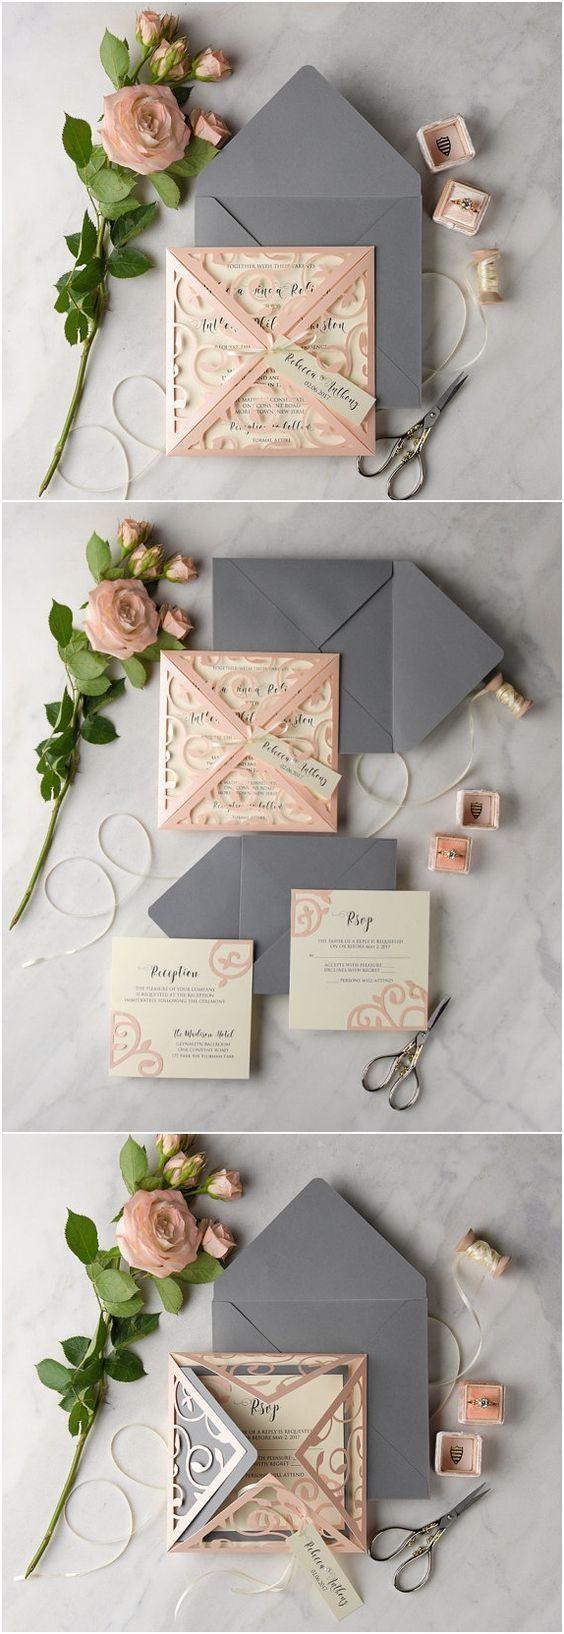 74 Best Invites Images On Pinterest Wedding Stationary Cards And